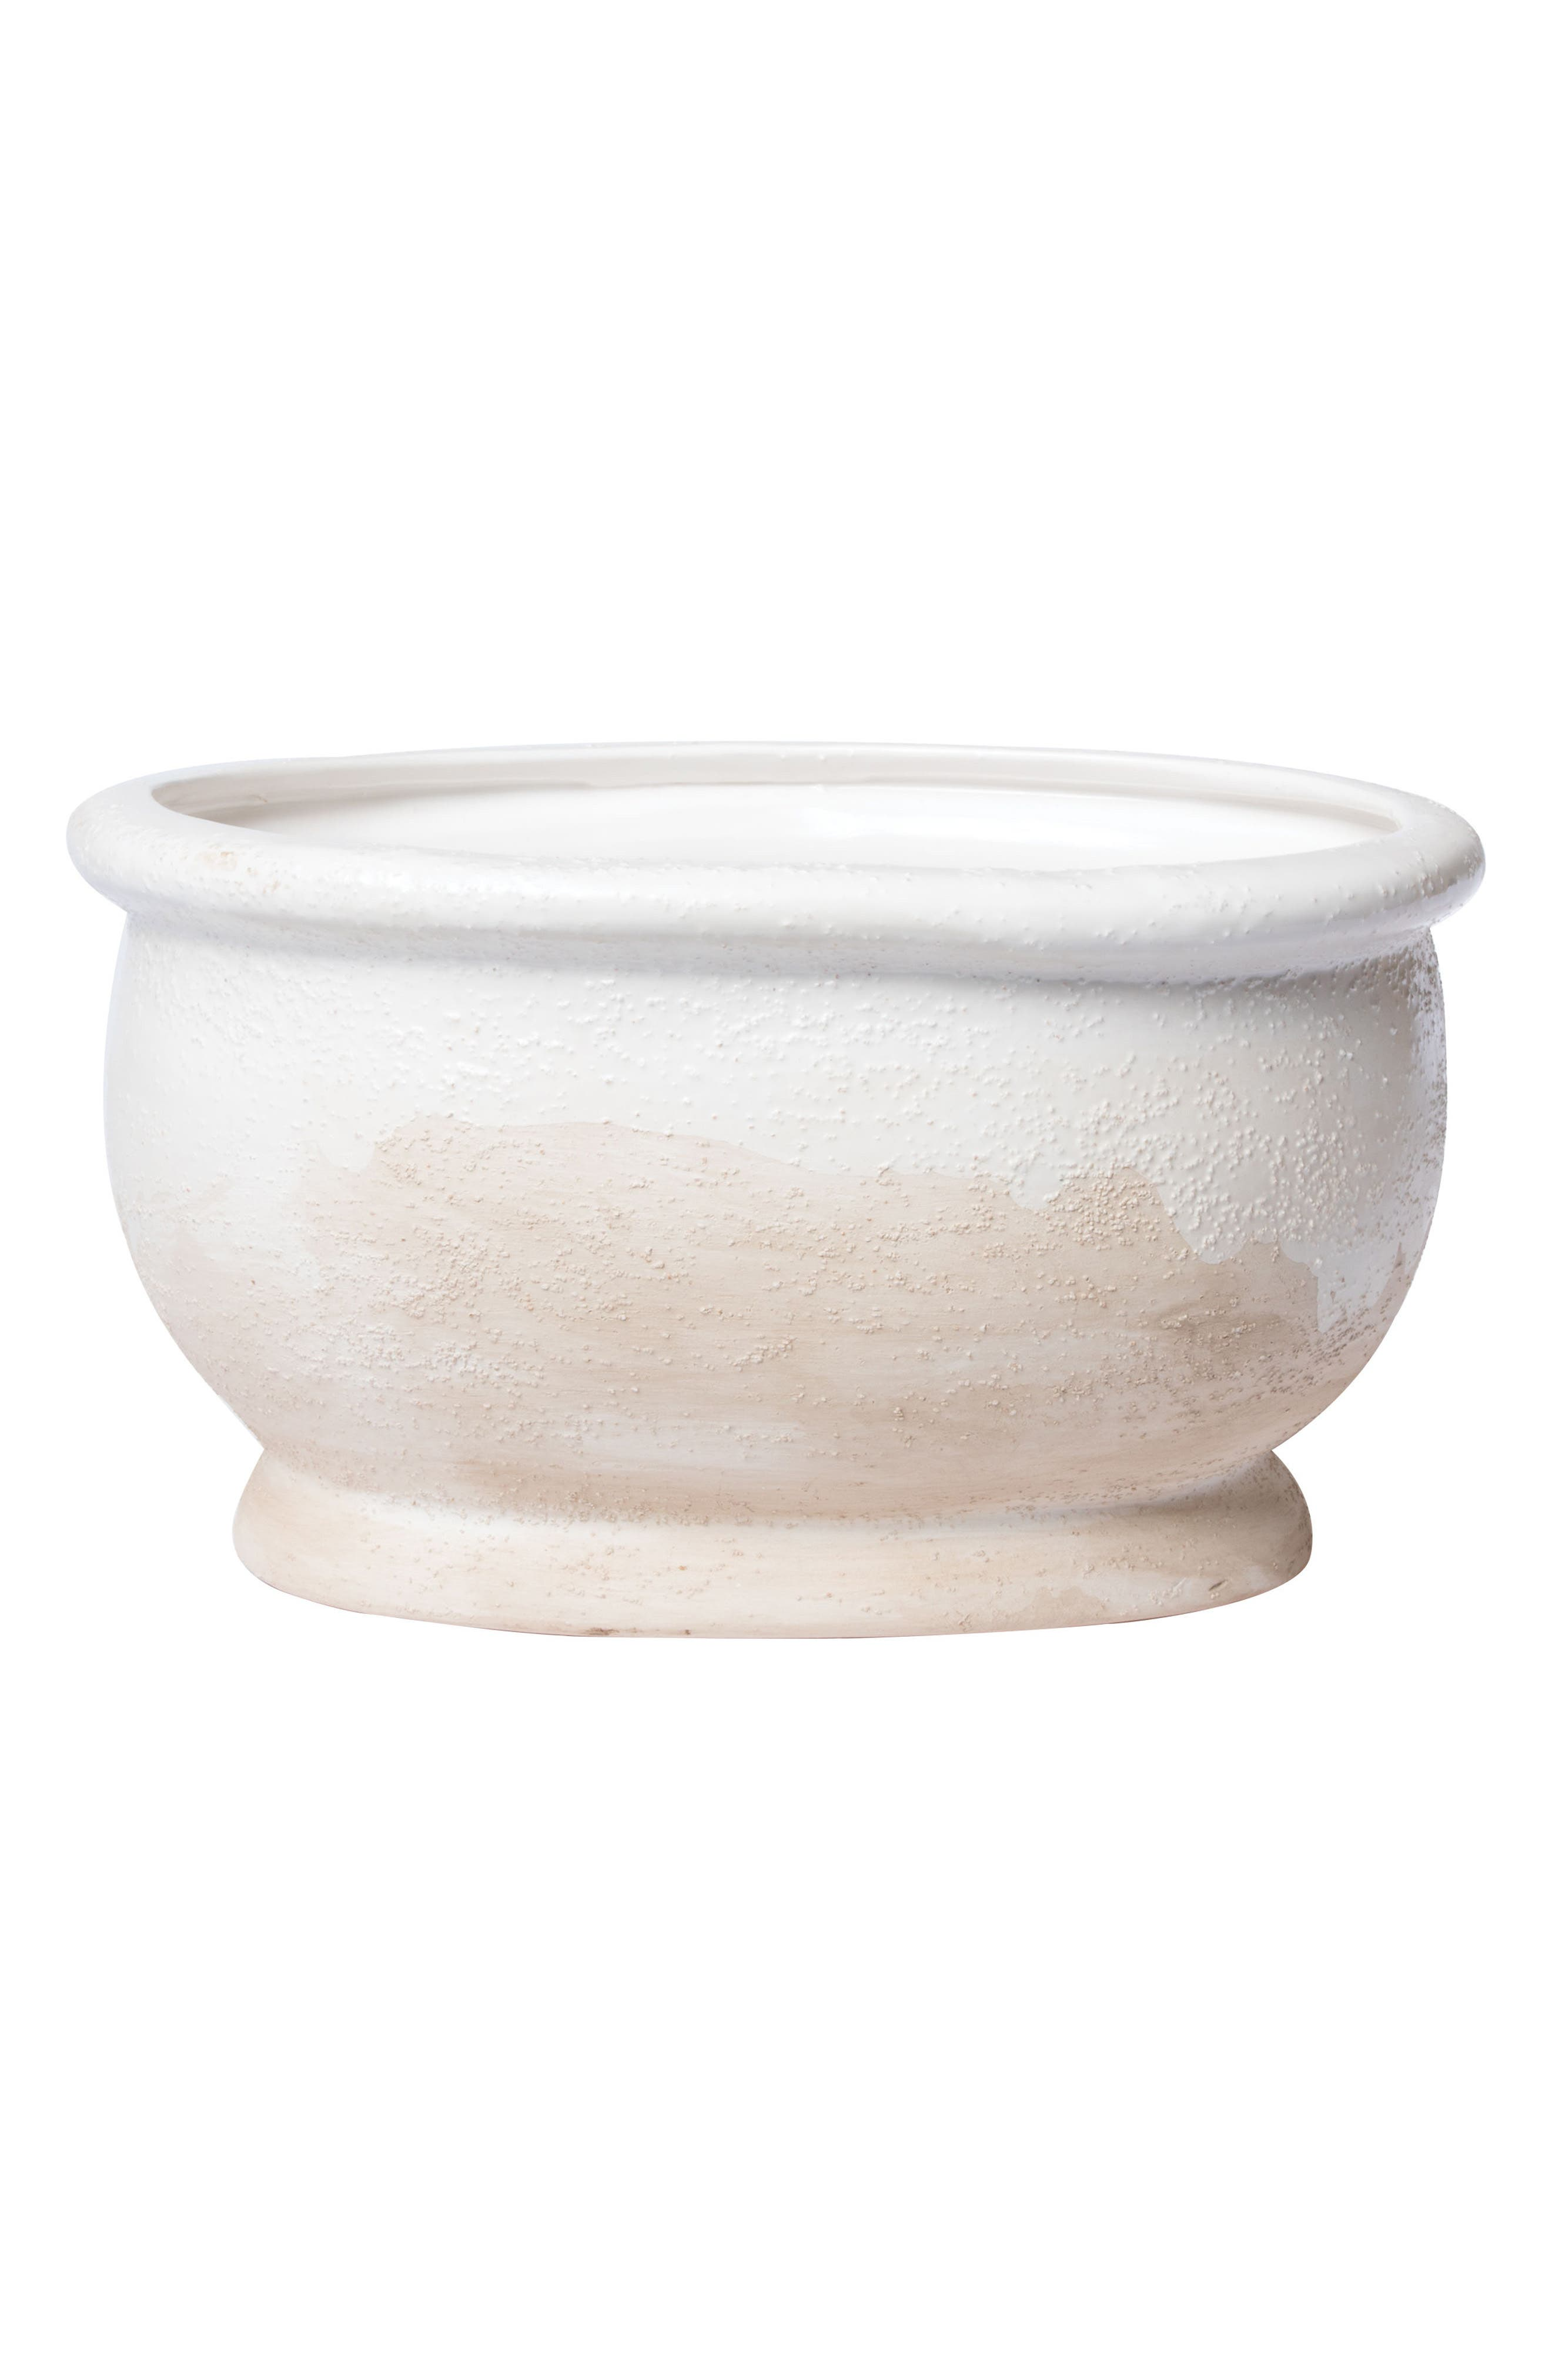 Tuscan Texture Oval Cachepot,                             Main thumbnail 1, color,                             White